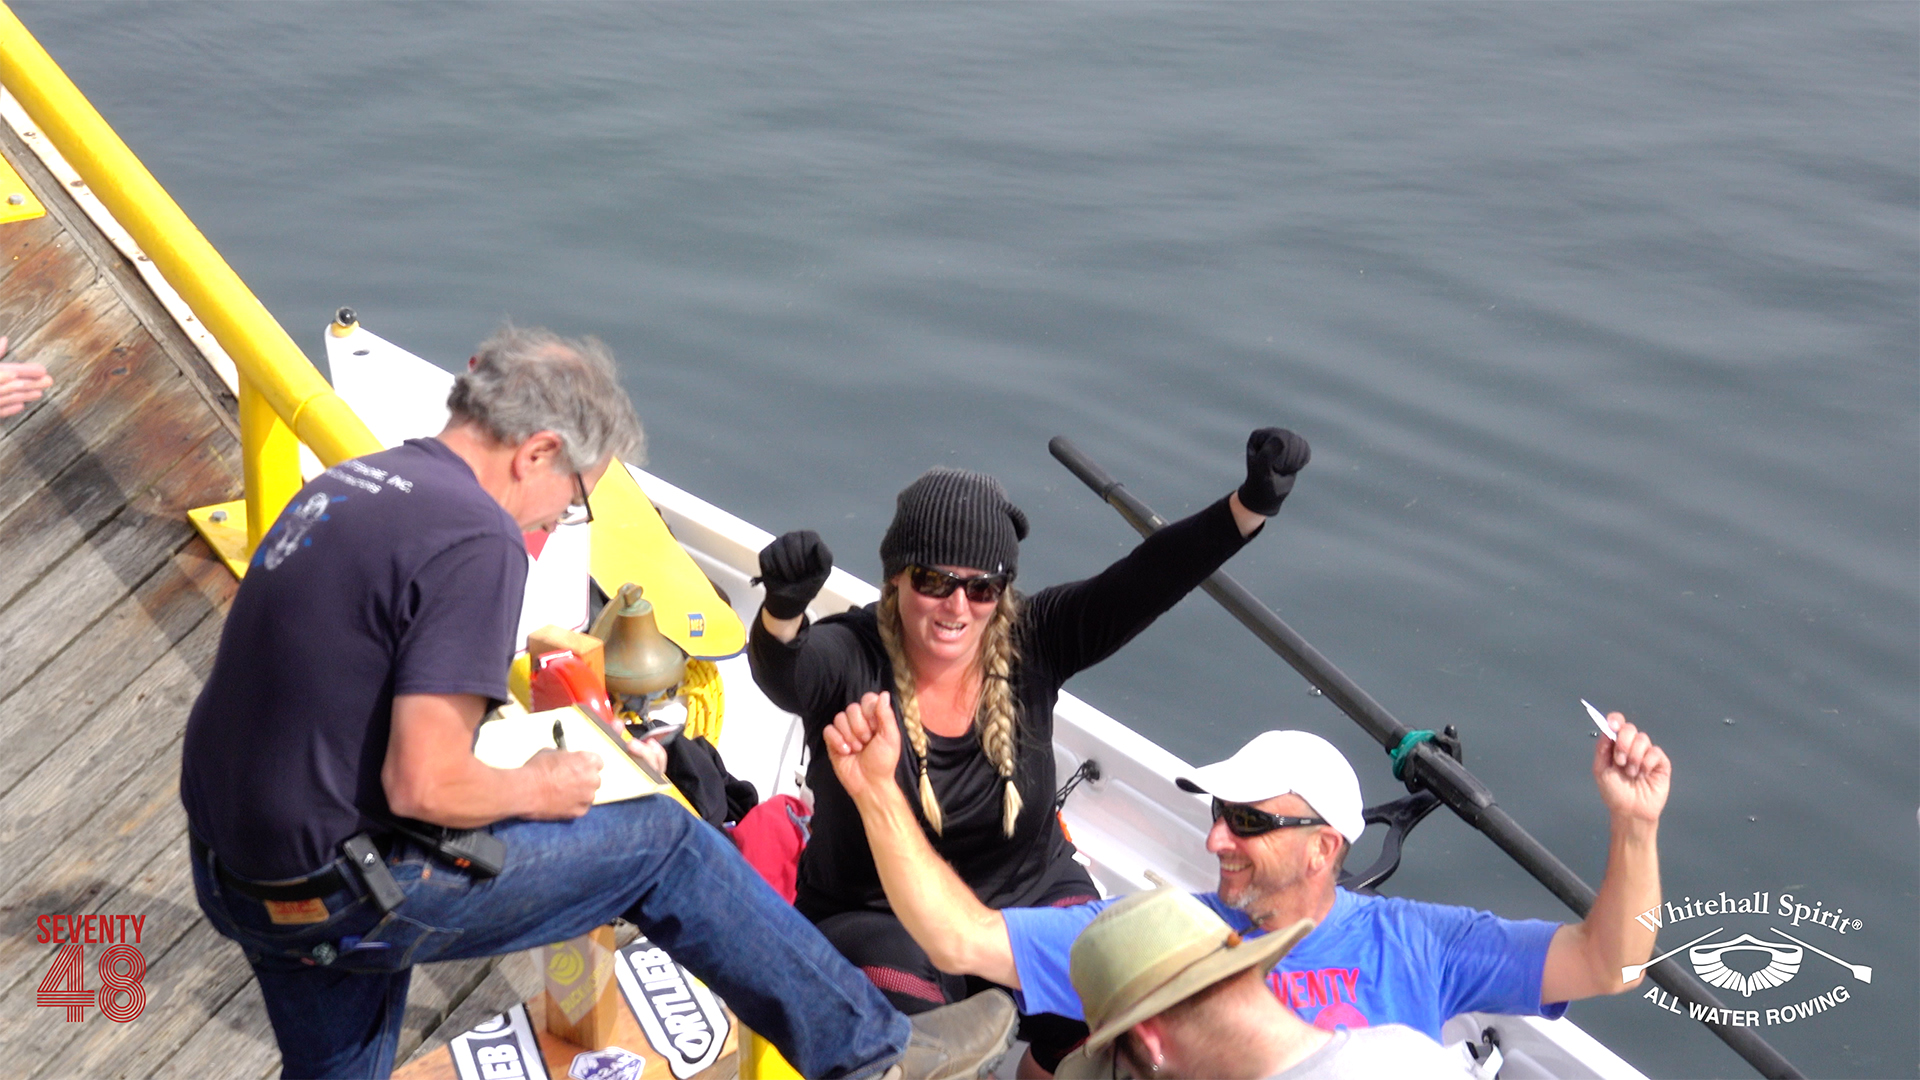 Finish-Line-Seventy48-Diana-Lesiuer-Peter-Vogel-Whitehall-Rowing